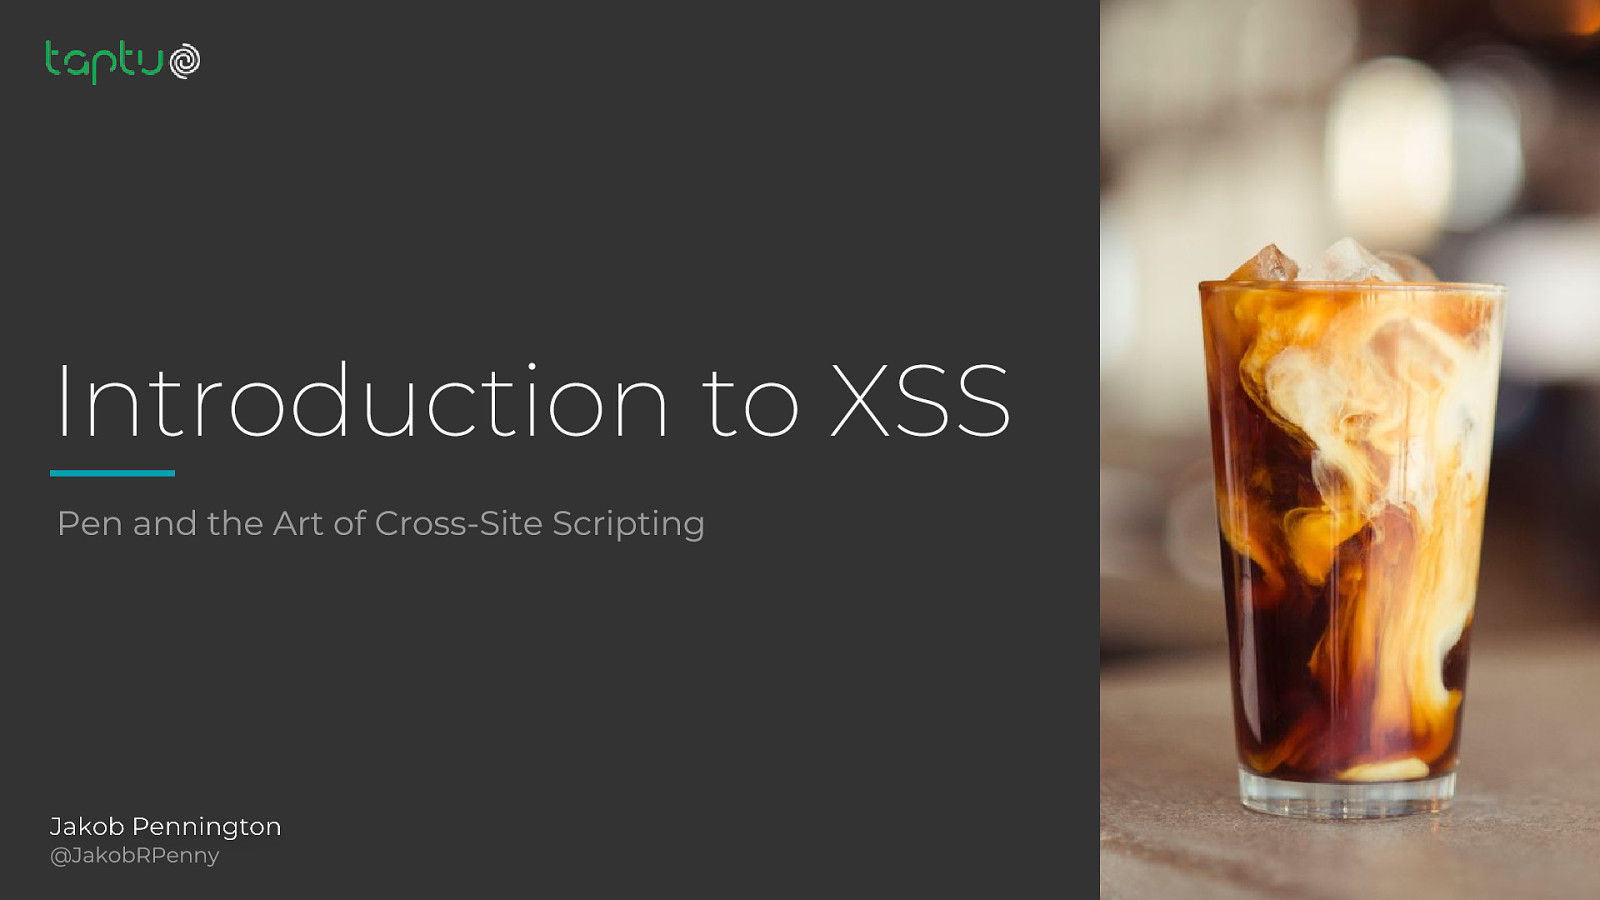 Introduction to XSS